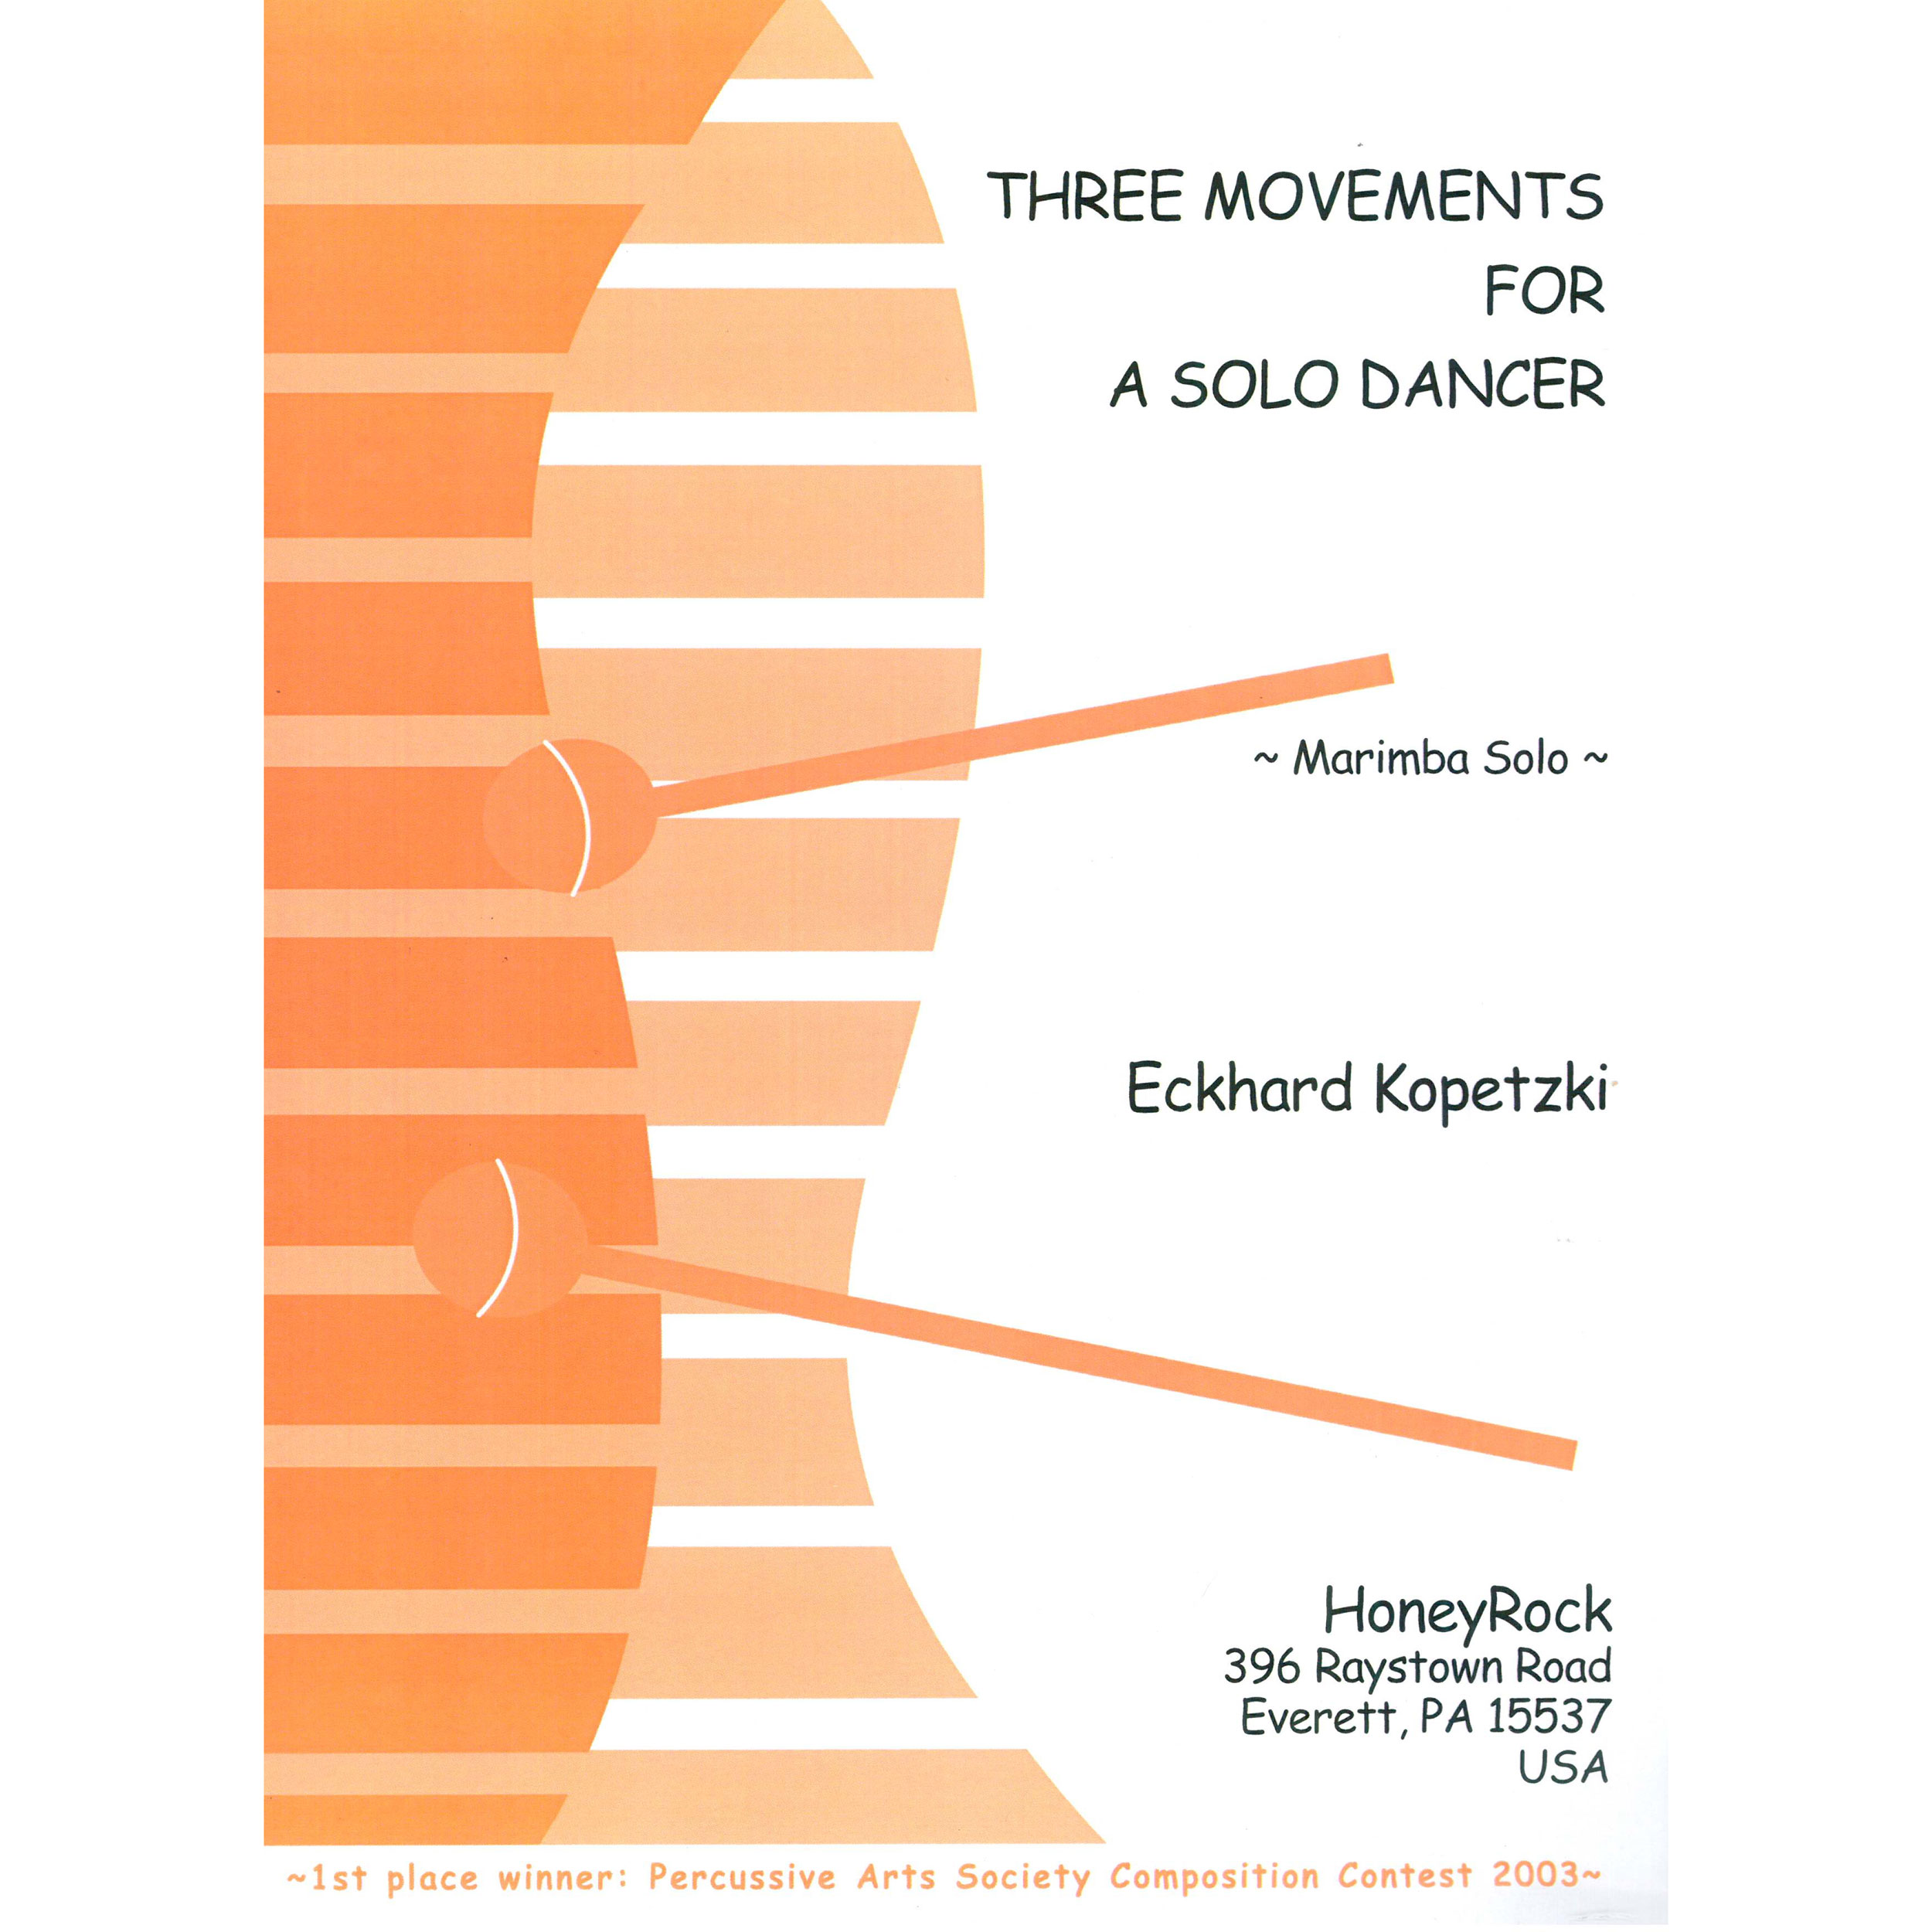 Three Movements for a Solo Dancer by Eckhard Kopetzki